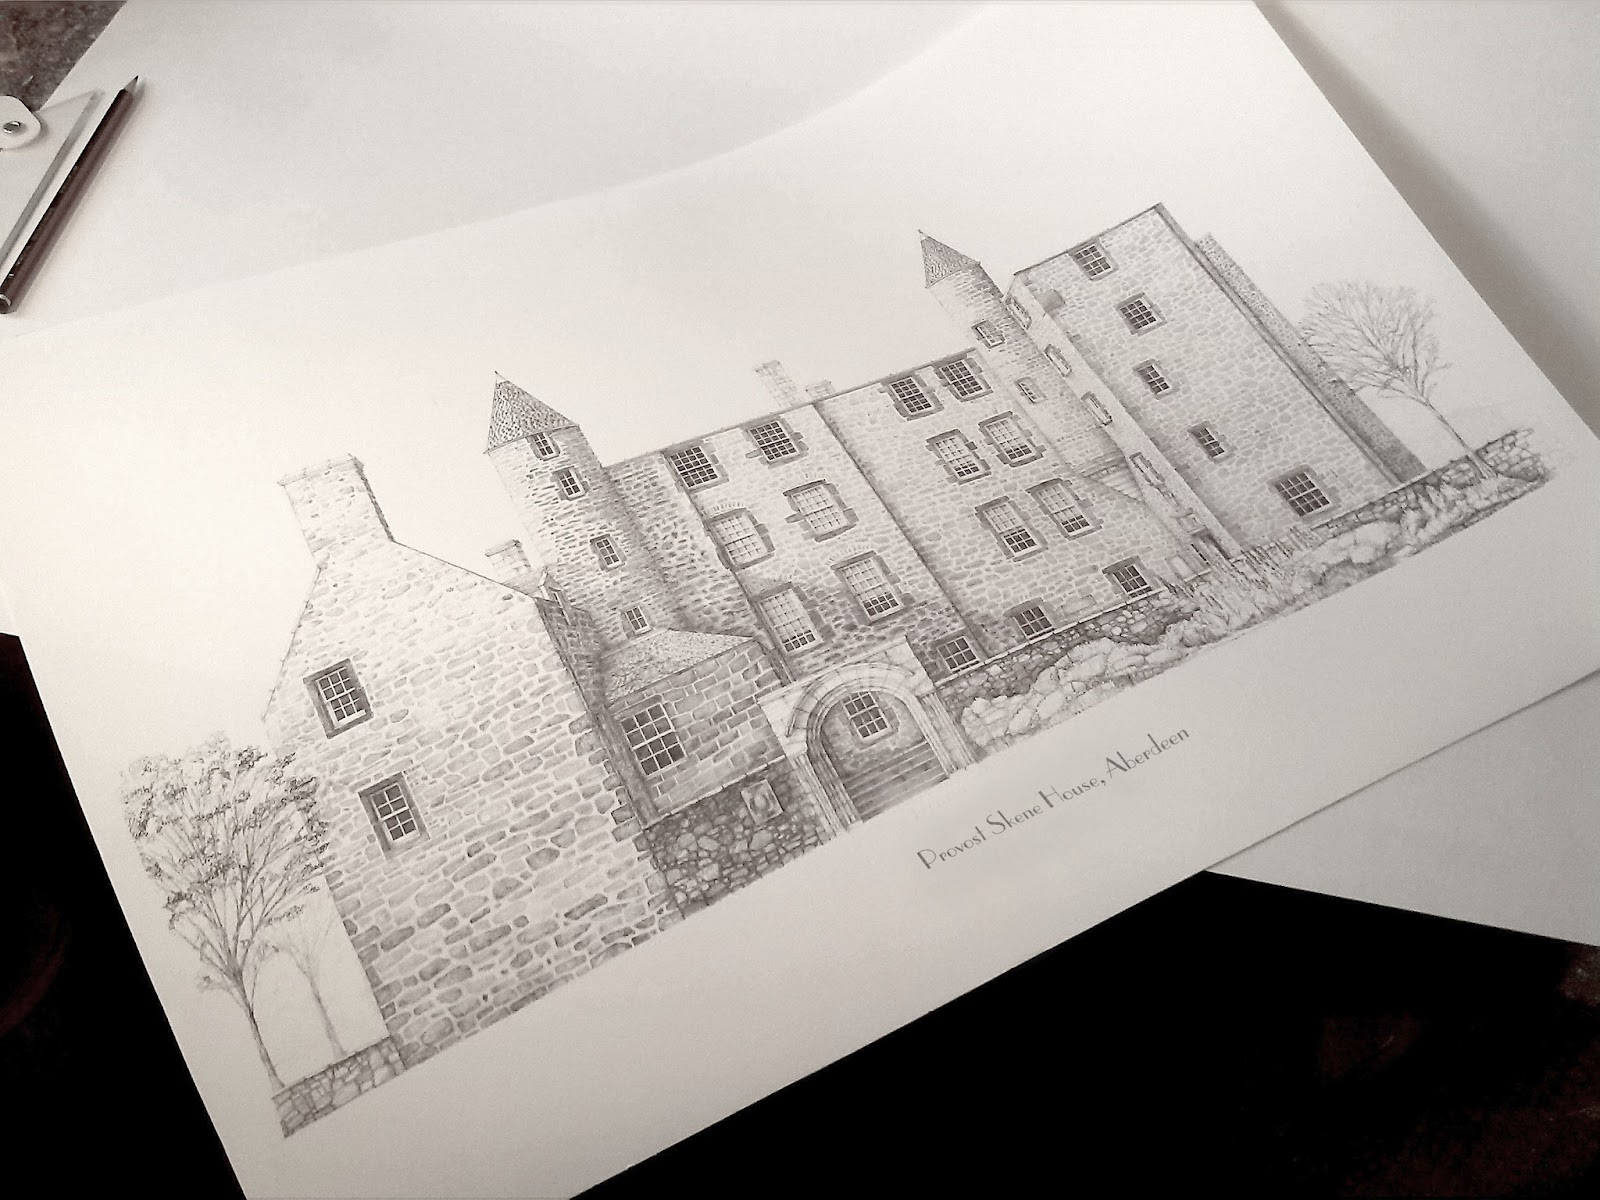 03-Provost-Skene-House-Aberdeen-Jamie-Cameron-Intricate-Architectural-Drawings-and-Illustrations-www-designstack-co